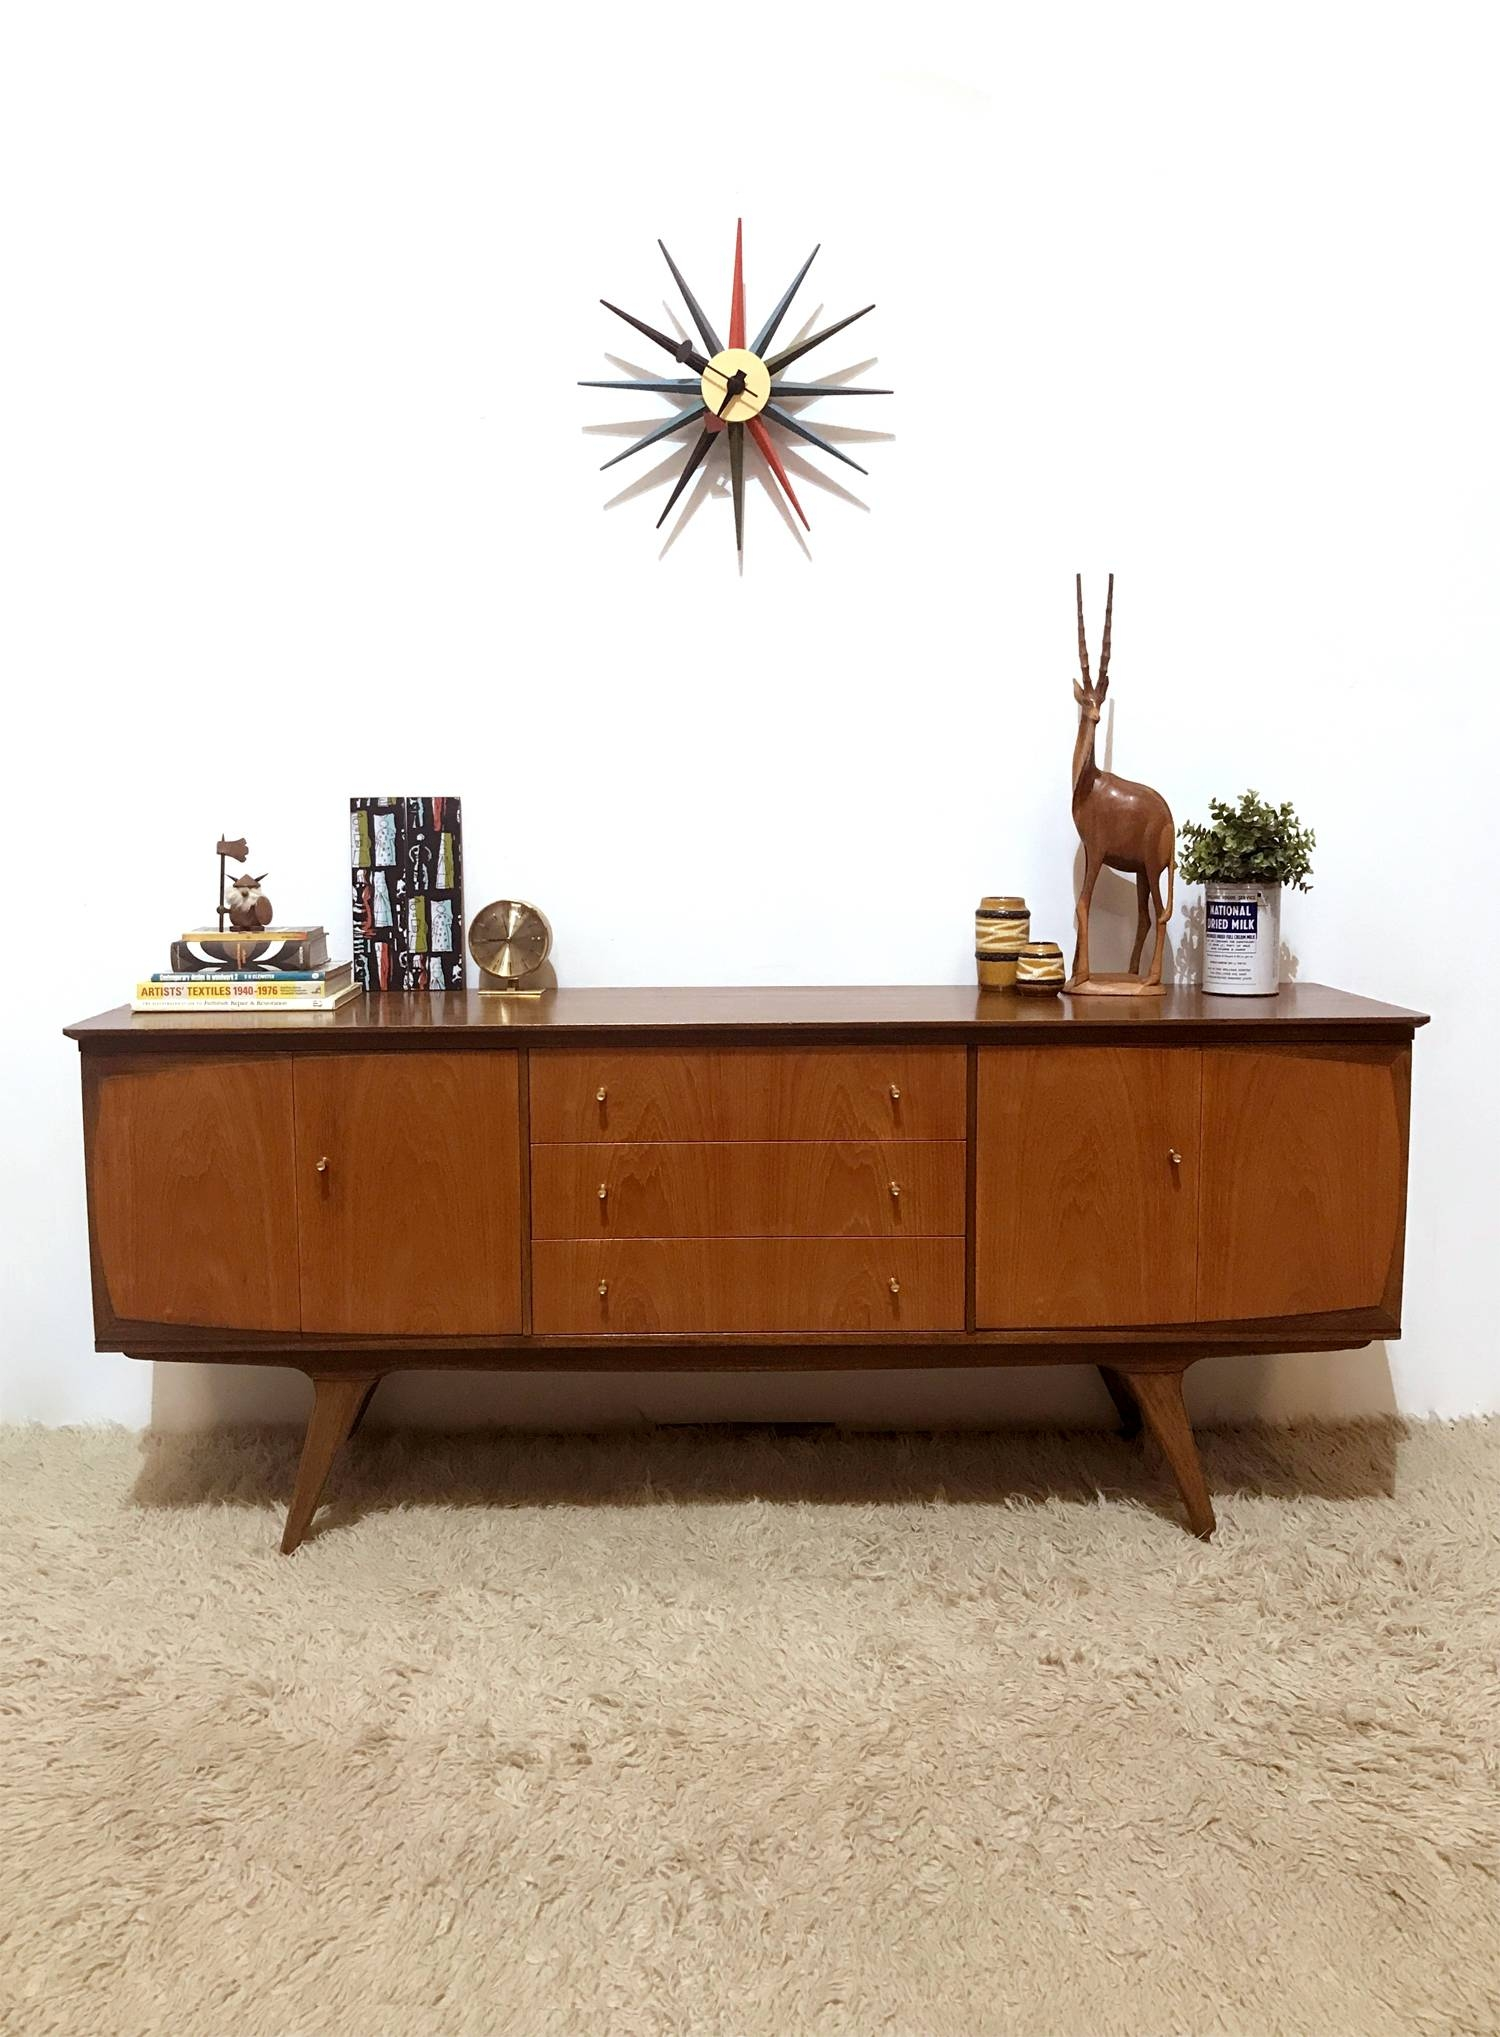 50S 60S Outstanding Mid Century Vintage Bi Folding Doors Sideboard in 50S Sideboards (Image 4 of 15)